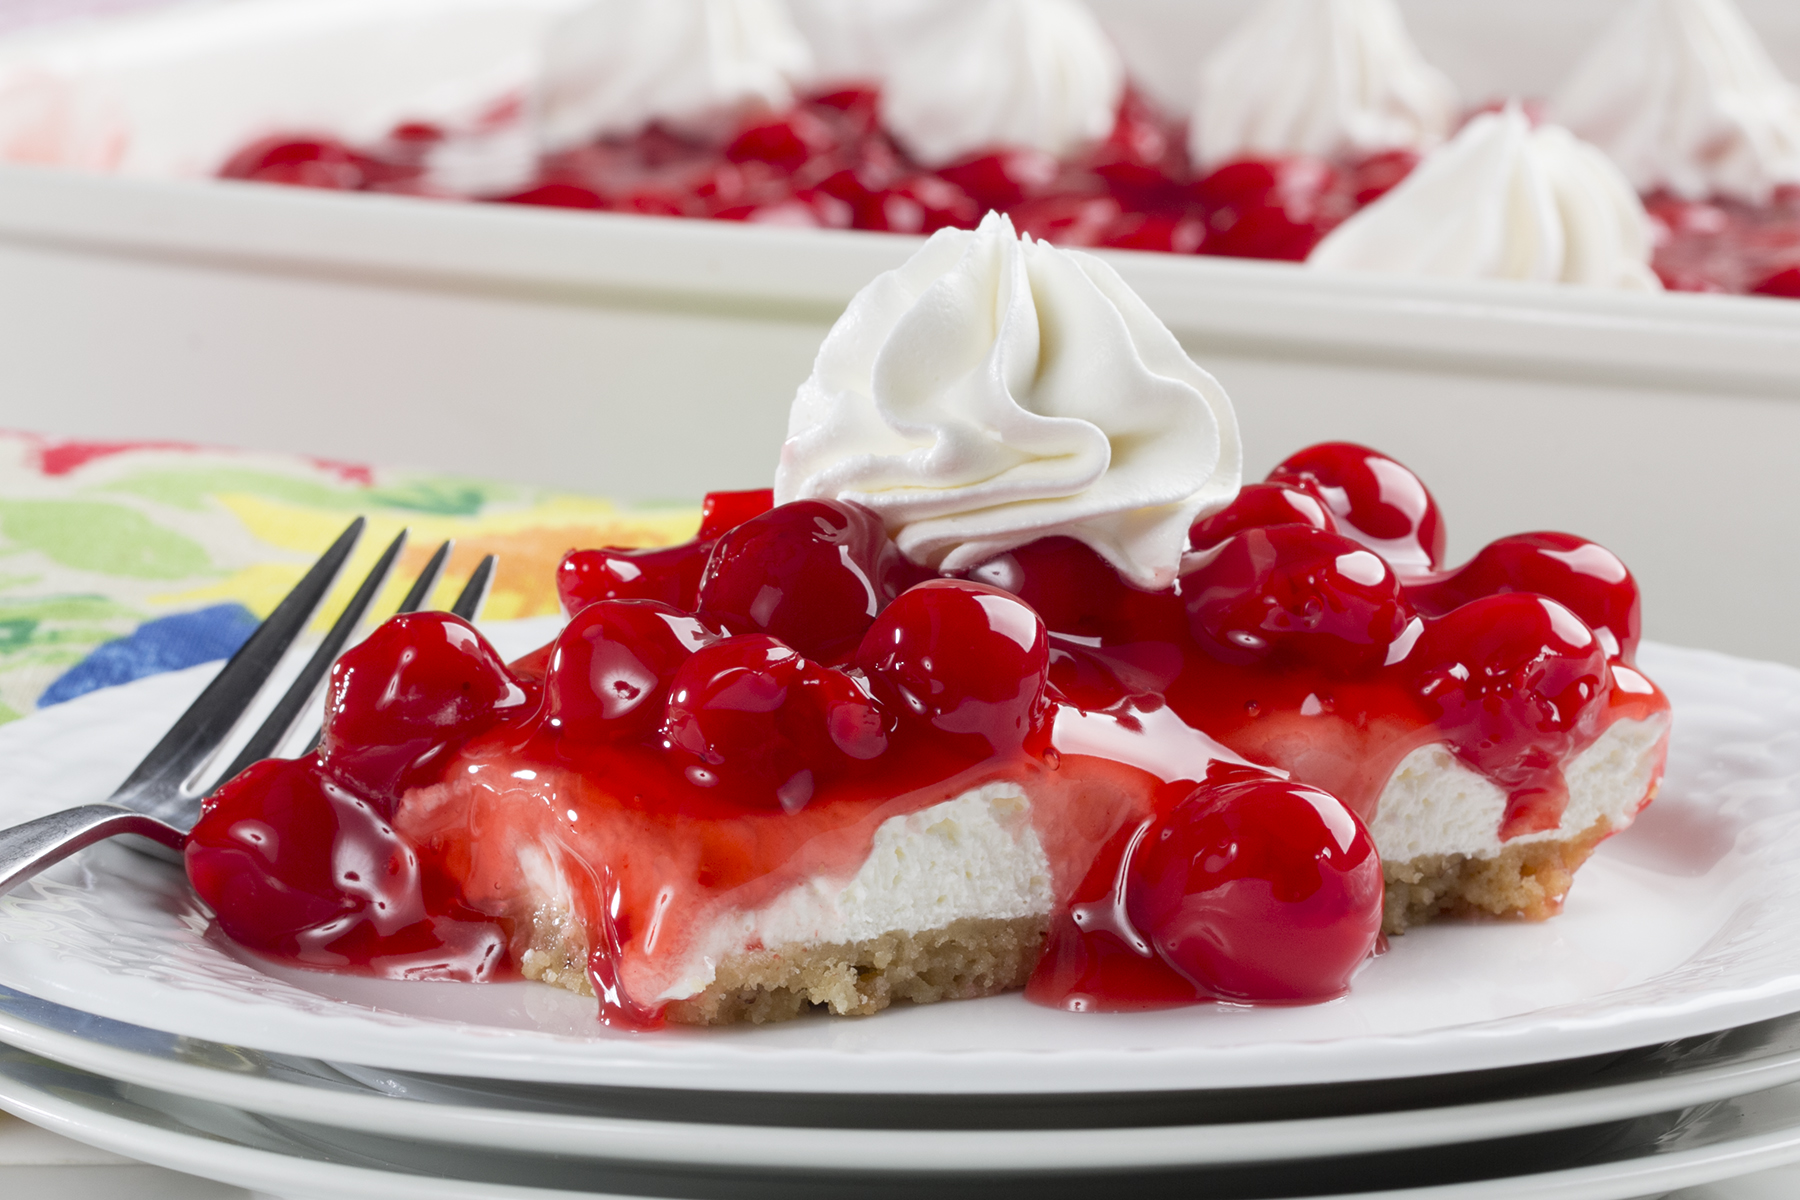 How To Make: Sweet Cherry Thing